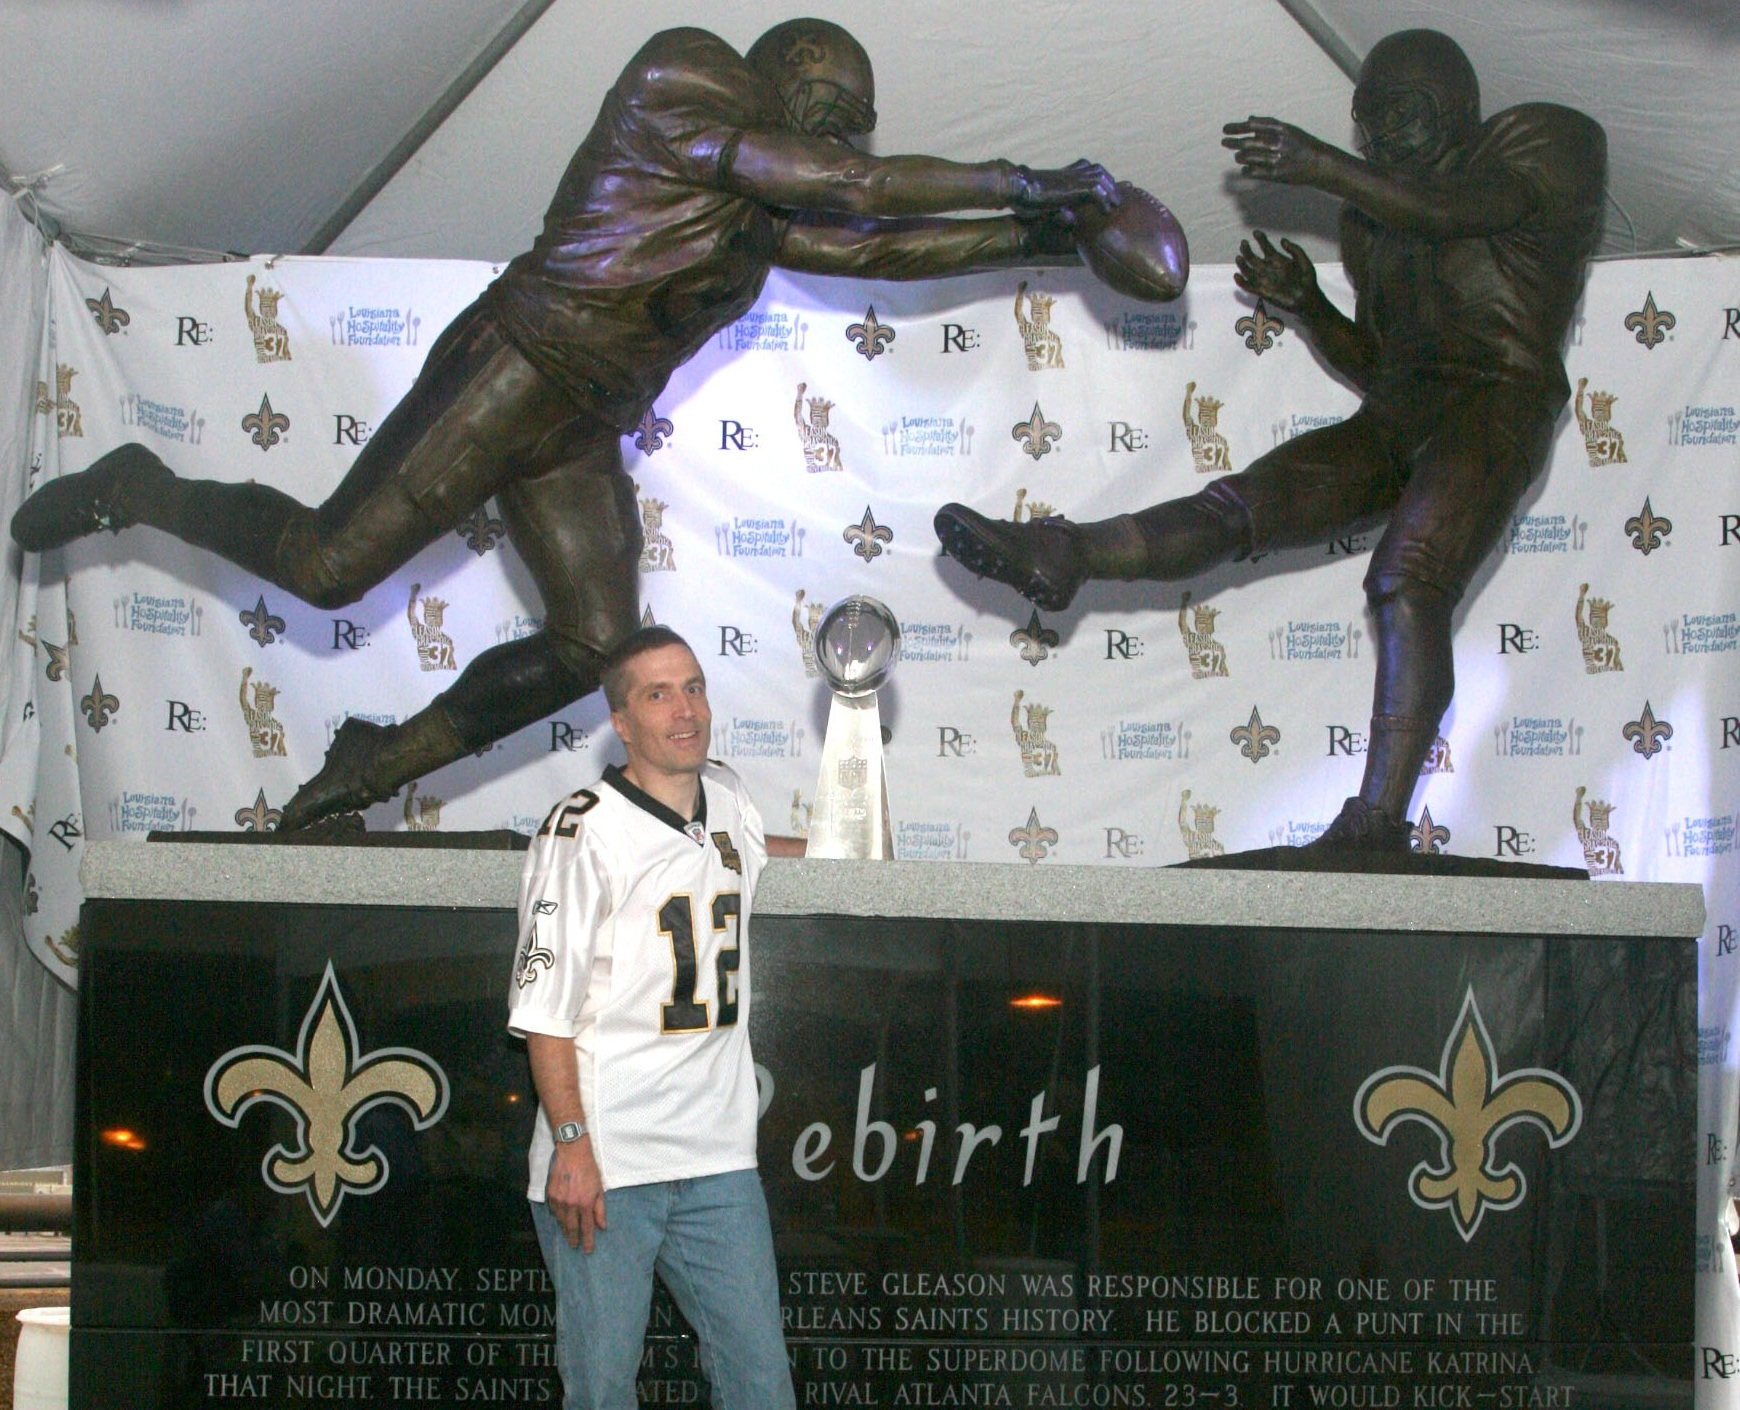 Yup, that's me this week with the Saints' actual Lombardi trophy from Super Bowl 44.